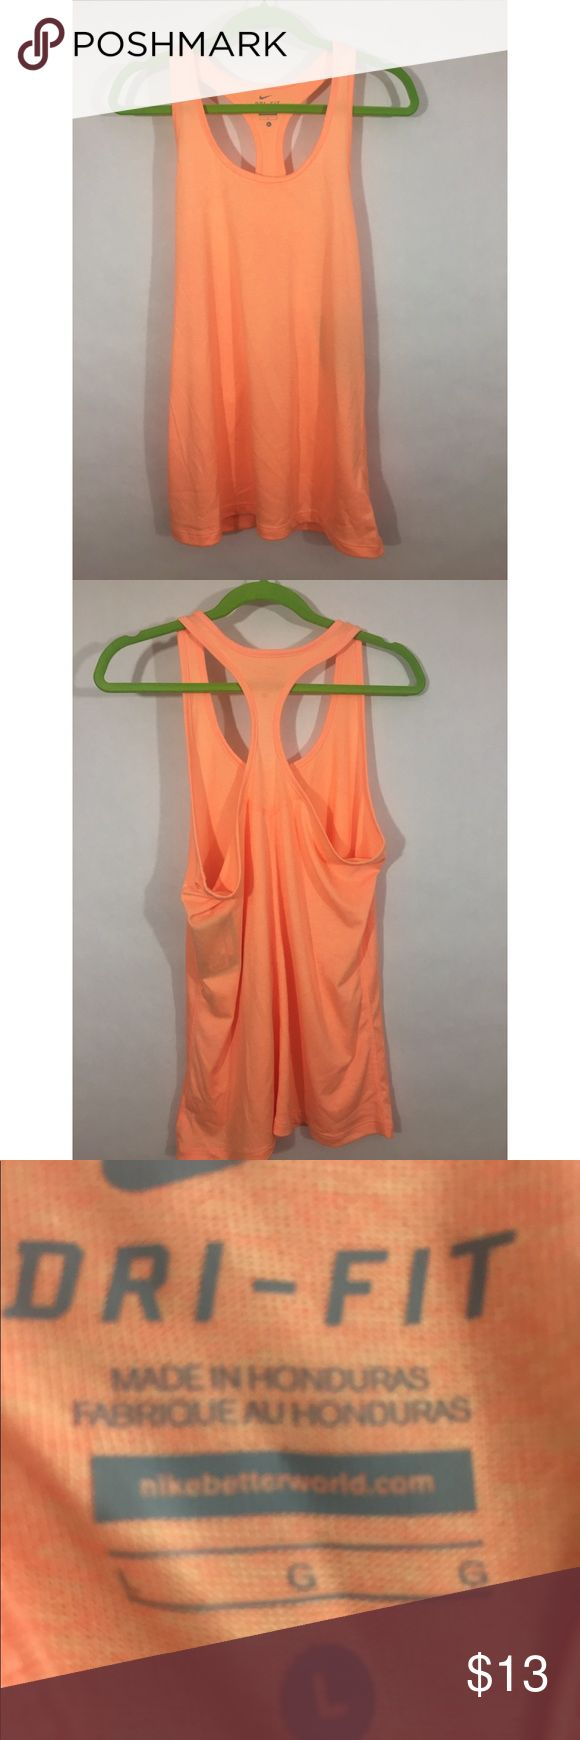 "NWT Nike balance dri-fit tank New with tags Nike dri-fit balance tank in peach. Size large. 100% polyester. Racer back. Retail $25. Bust 19.5"", length 28"". Nike Tops Tank Tops"